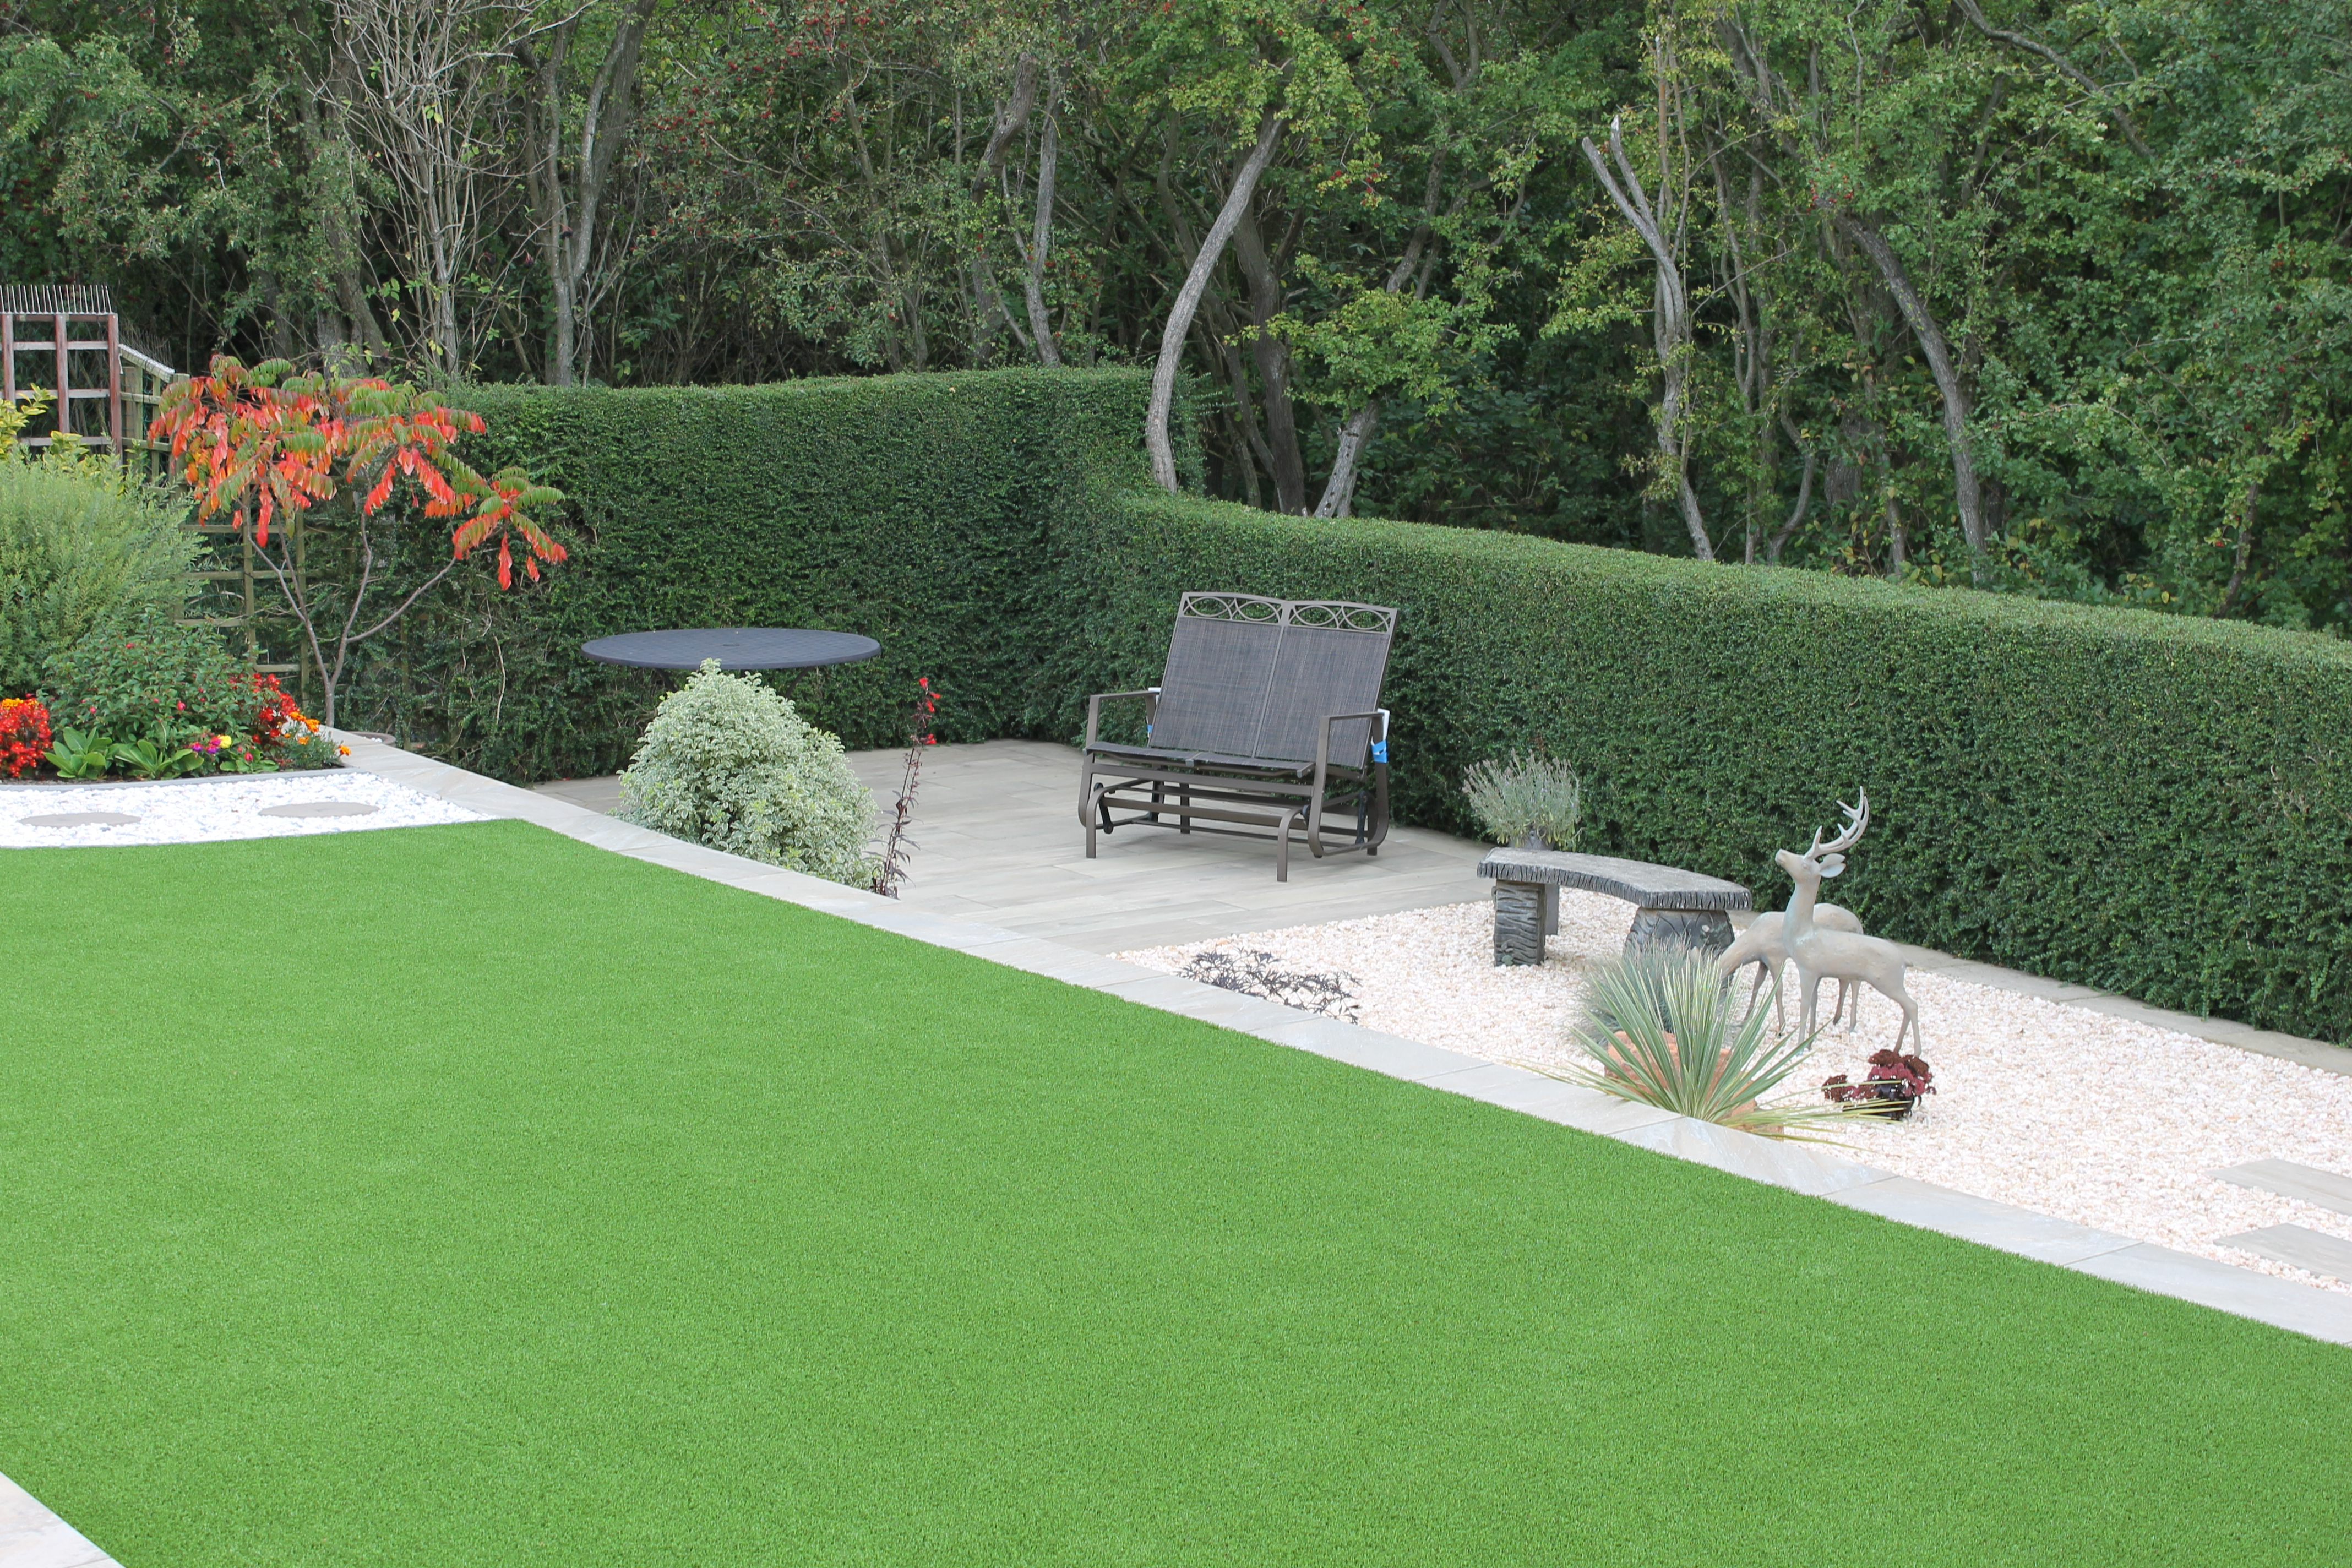 artificial grass, paving and seating area